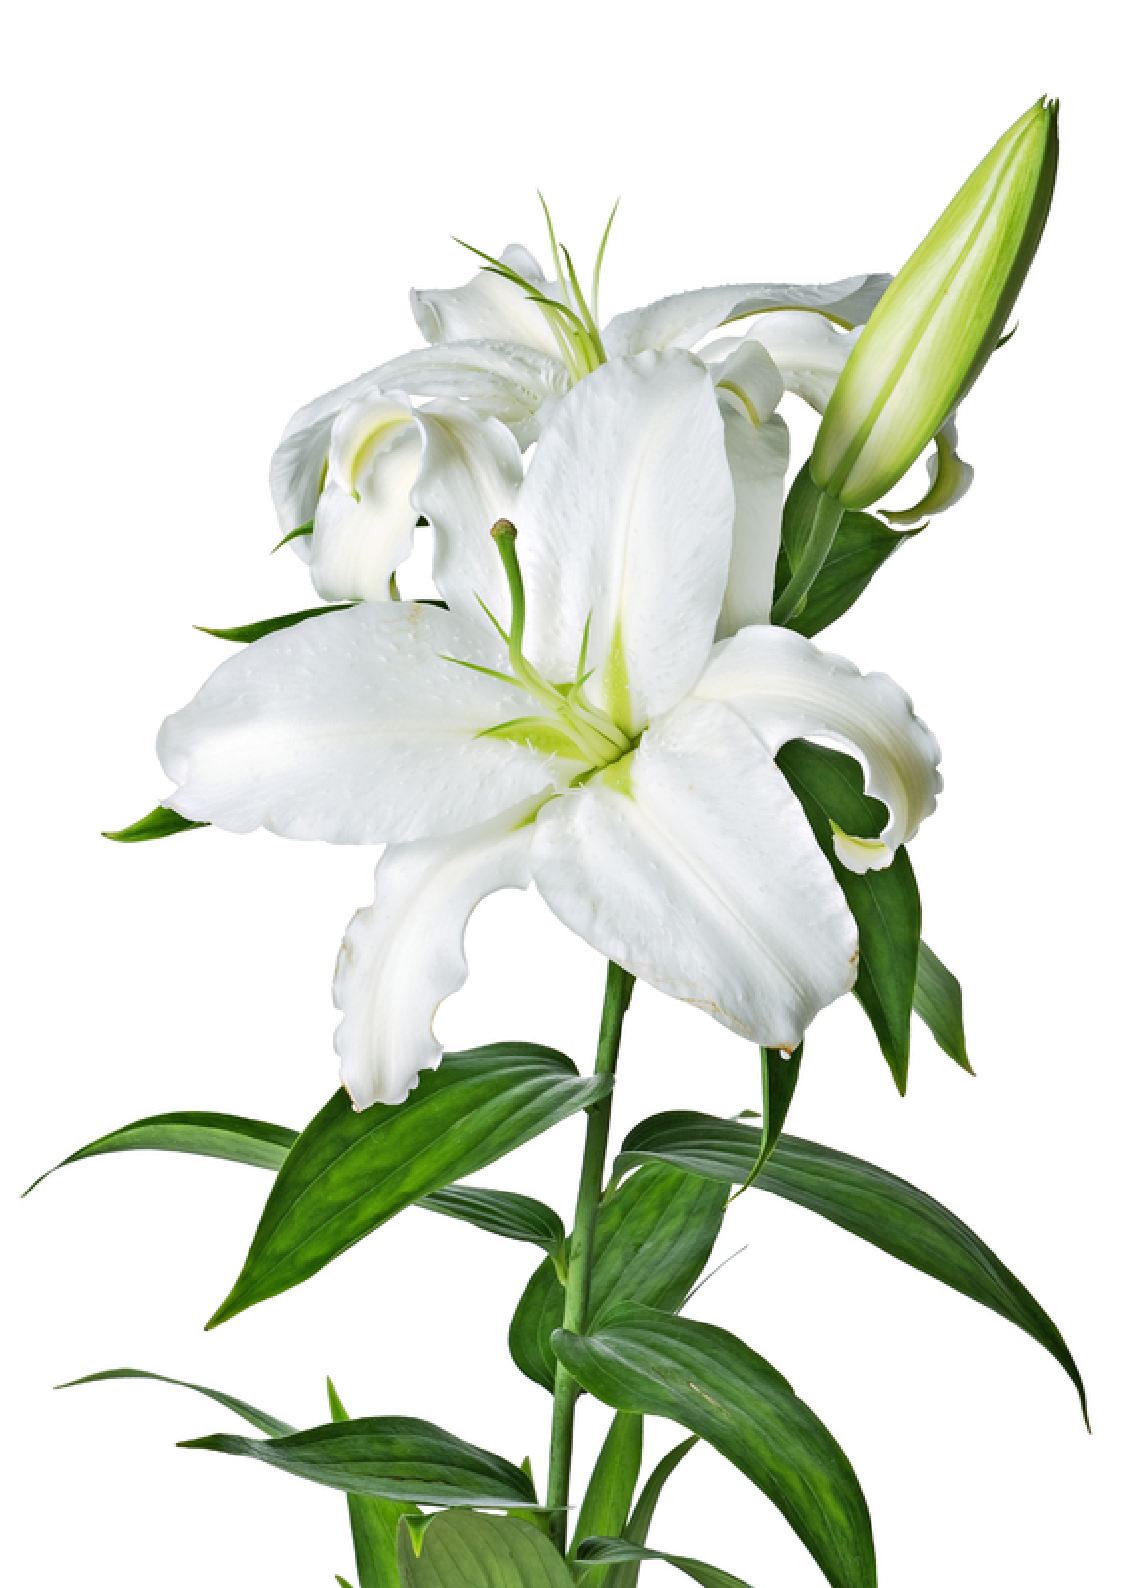 Funeral clipart lace. Lilys site white lilies